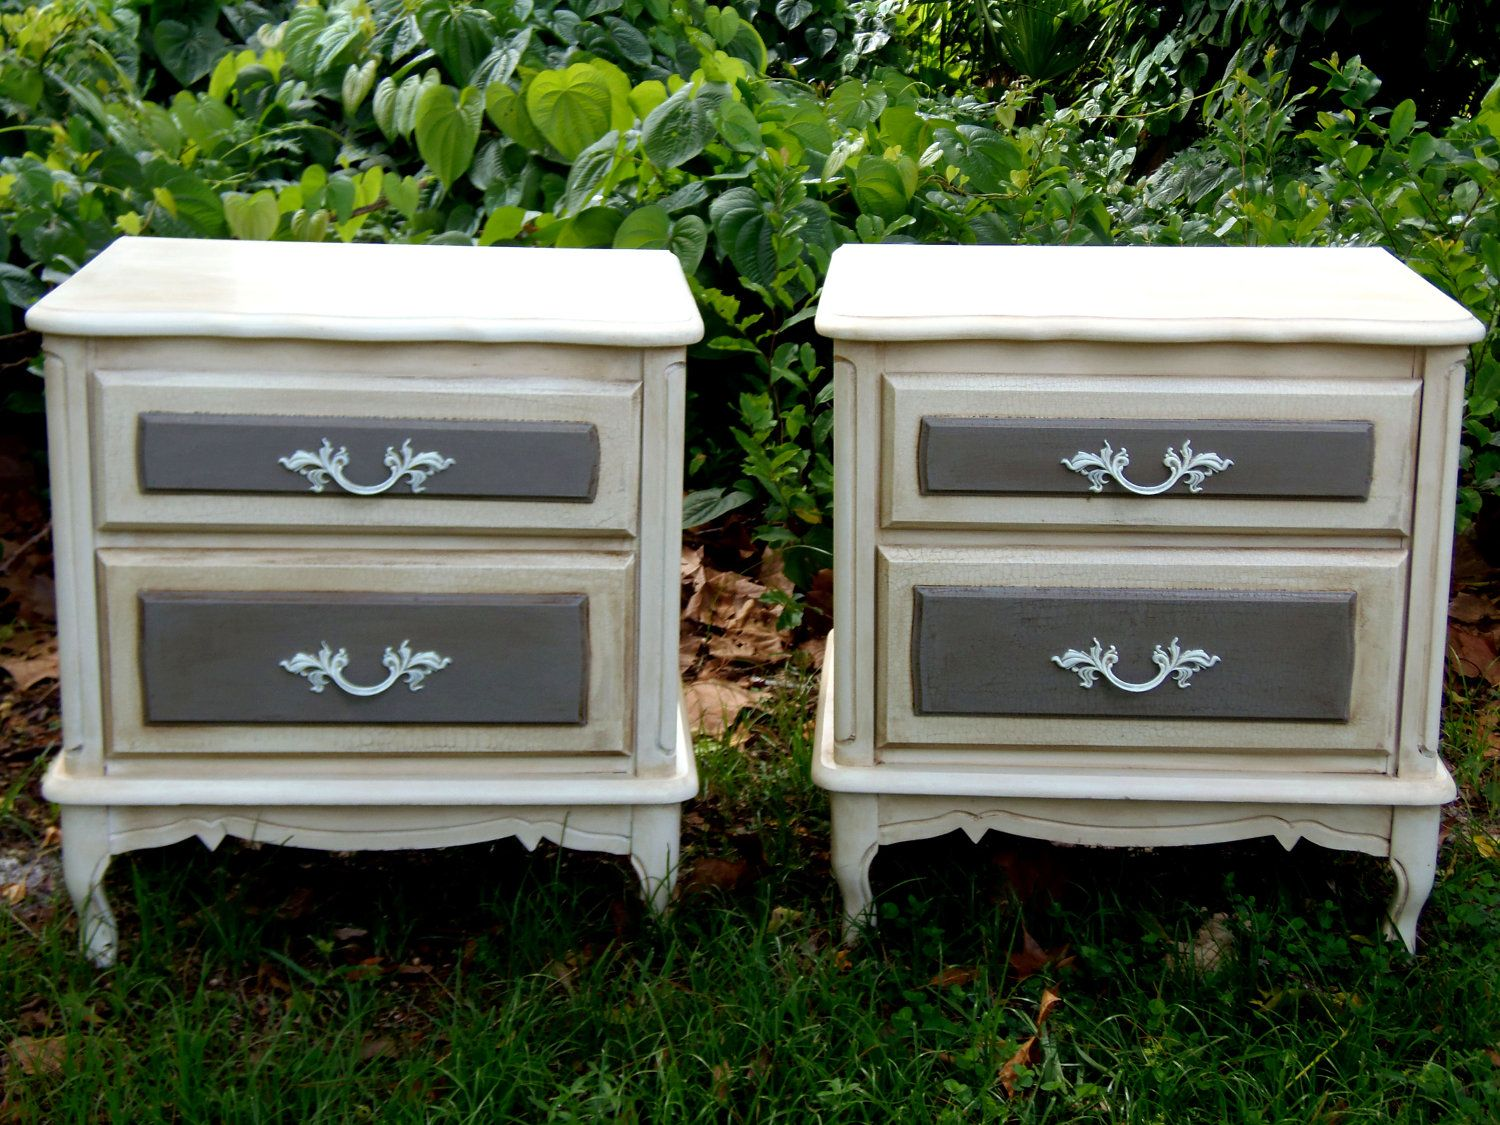 Vintage Nightstands Part - 15: Vintage Set Nightstands French Country Nightstands Paris Apartment End  Tables Country Curvy Cottage Shabby Chic Nightstands